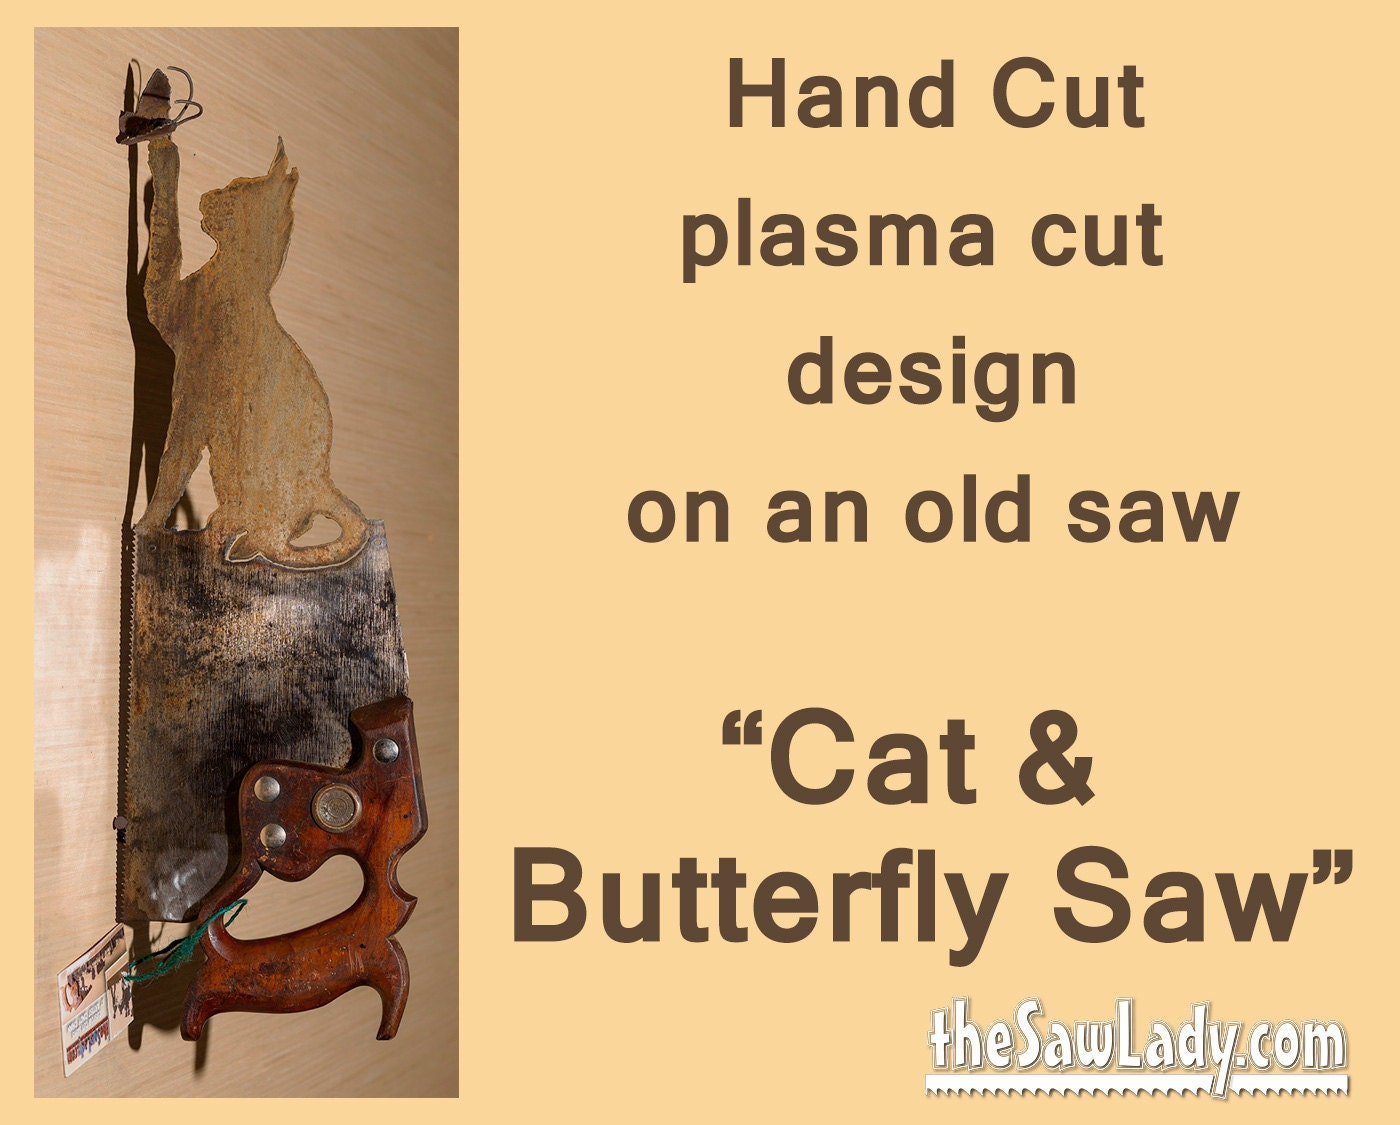 Metal Art Cat and Butterfly design on Hand plasma cut